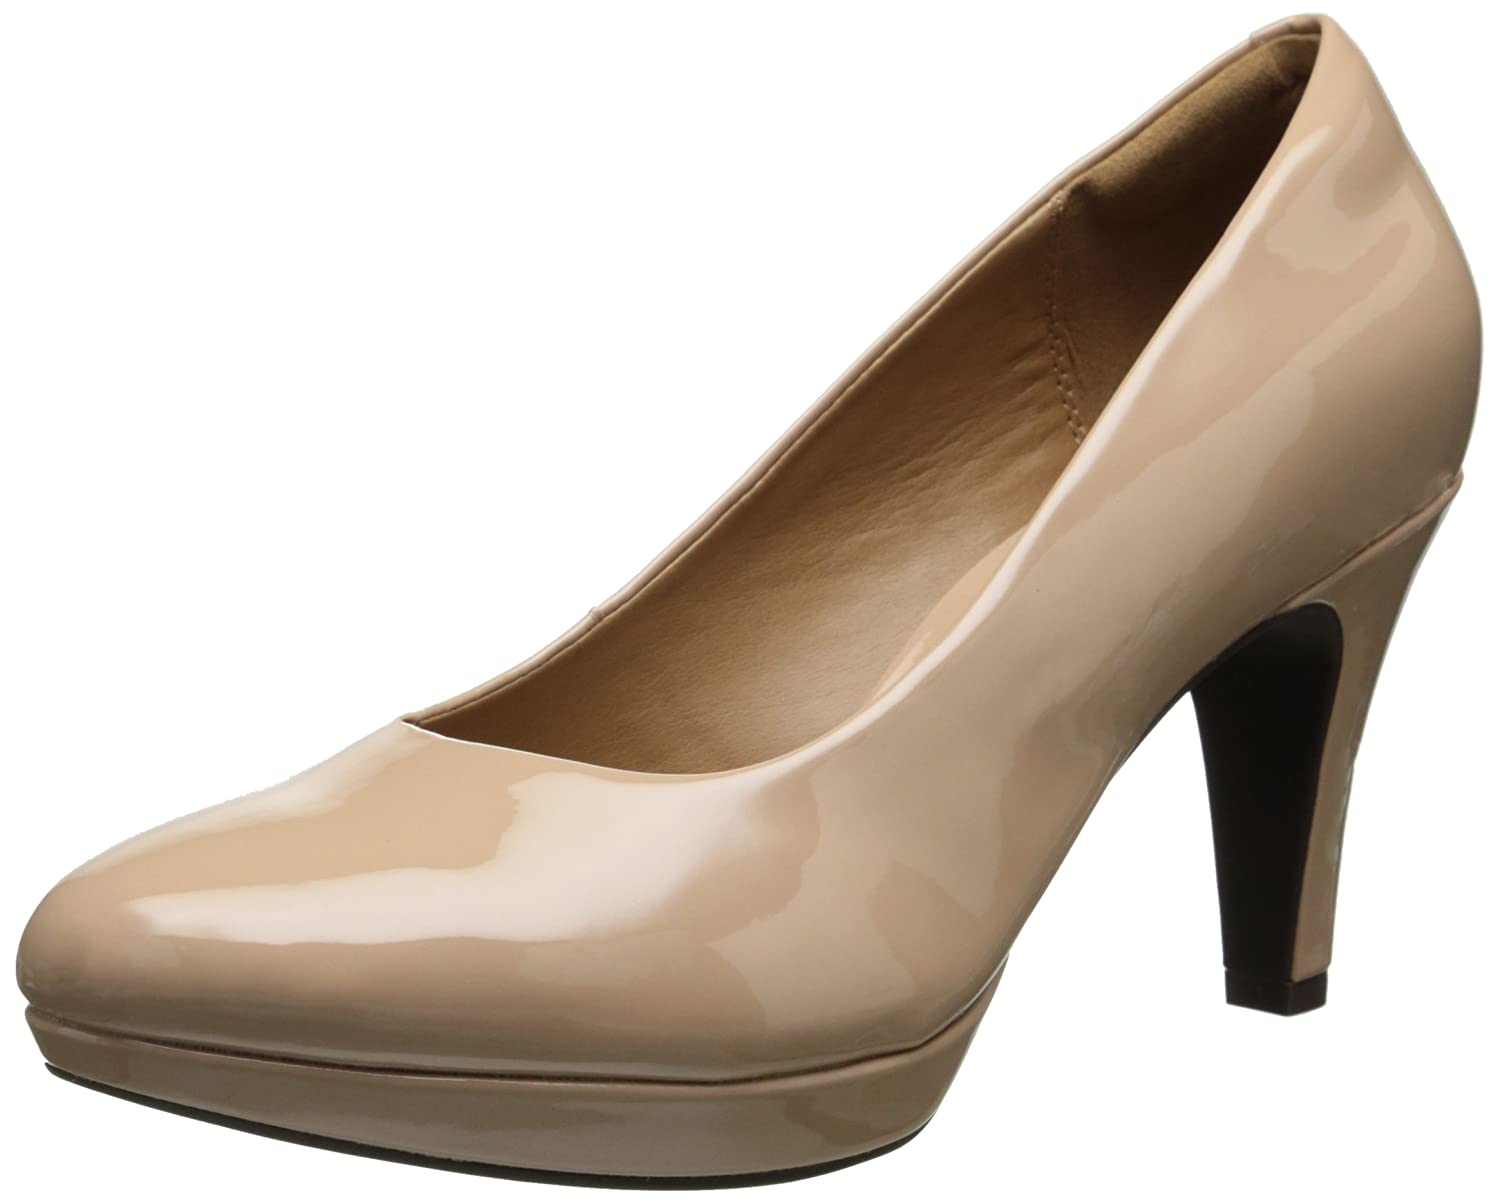 CLARKS Women's Brier Dolly Dress Pump B00HSHJEDM 8.5 B(M) US|Nude Synthetic